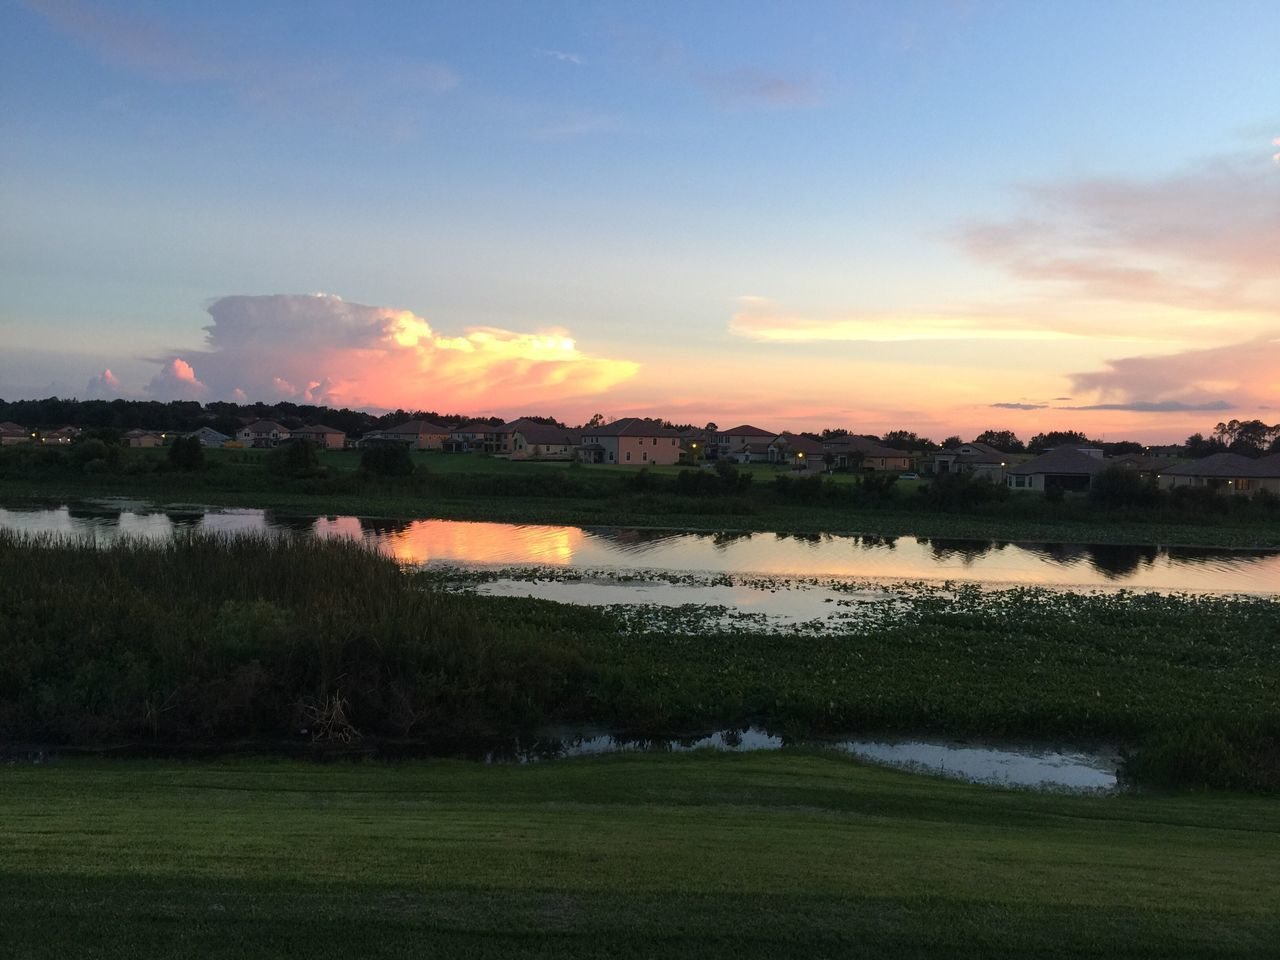 sunset, nature, water, scenics, beauty in nature, sky, tranquil scene, tranquility, lake, reflection, grass, landscape, no people, outdoors, field, cloud - sky, tree, day